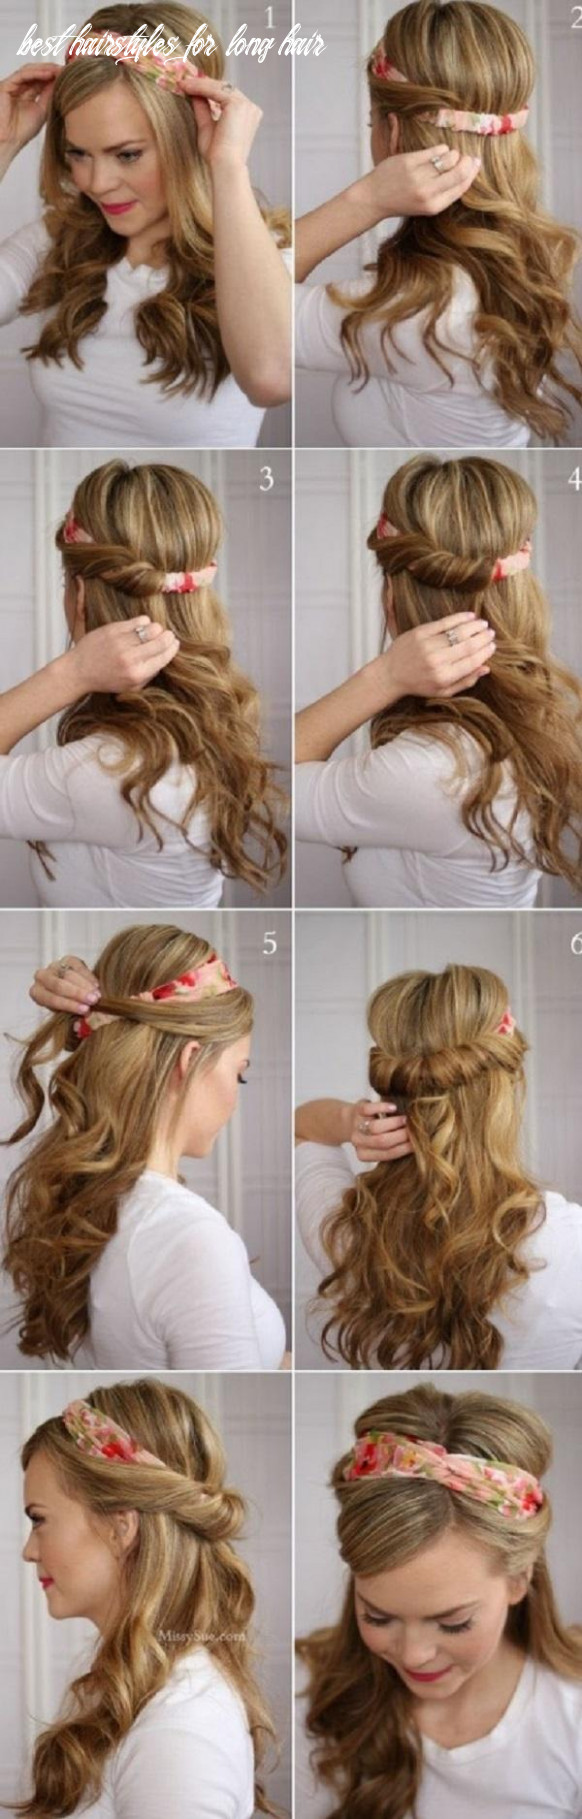 9 easy hairstyles for long hair | cuded best hairstyles for long hair